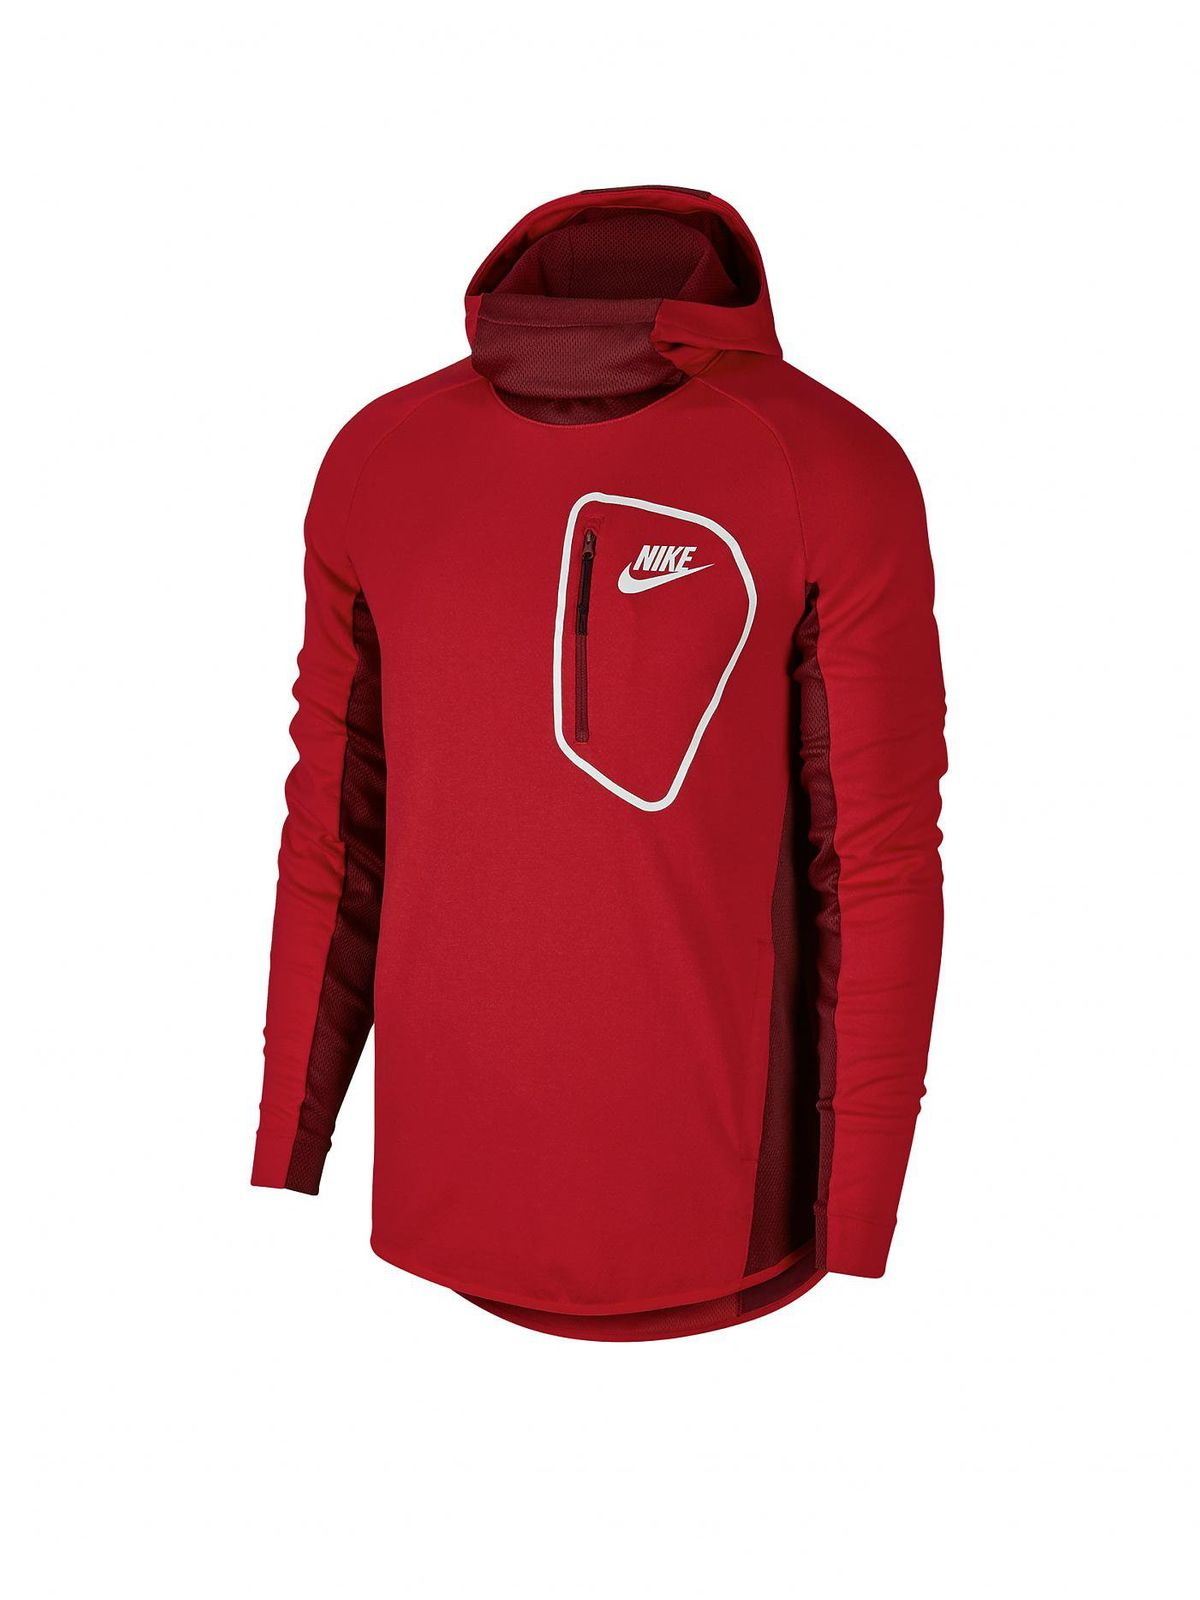 nike herren sport freizeit pullover nsw av15 hoodie rot weiss. Black Bedroom Furniture Sets. Home Design Ideas